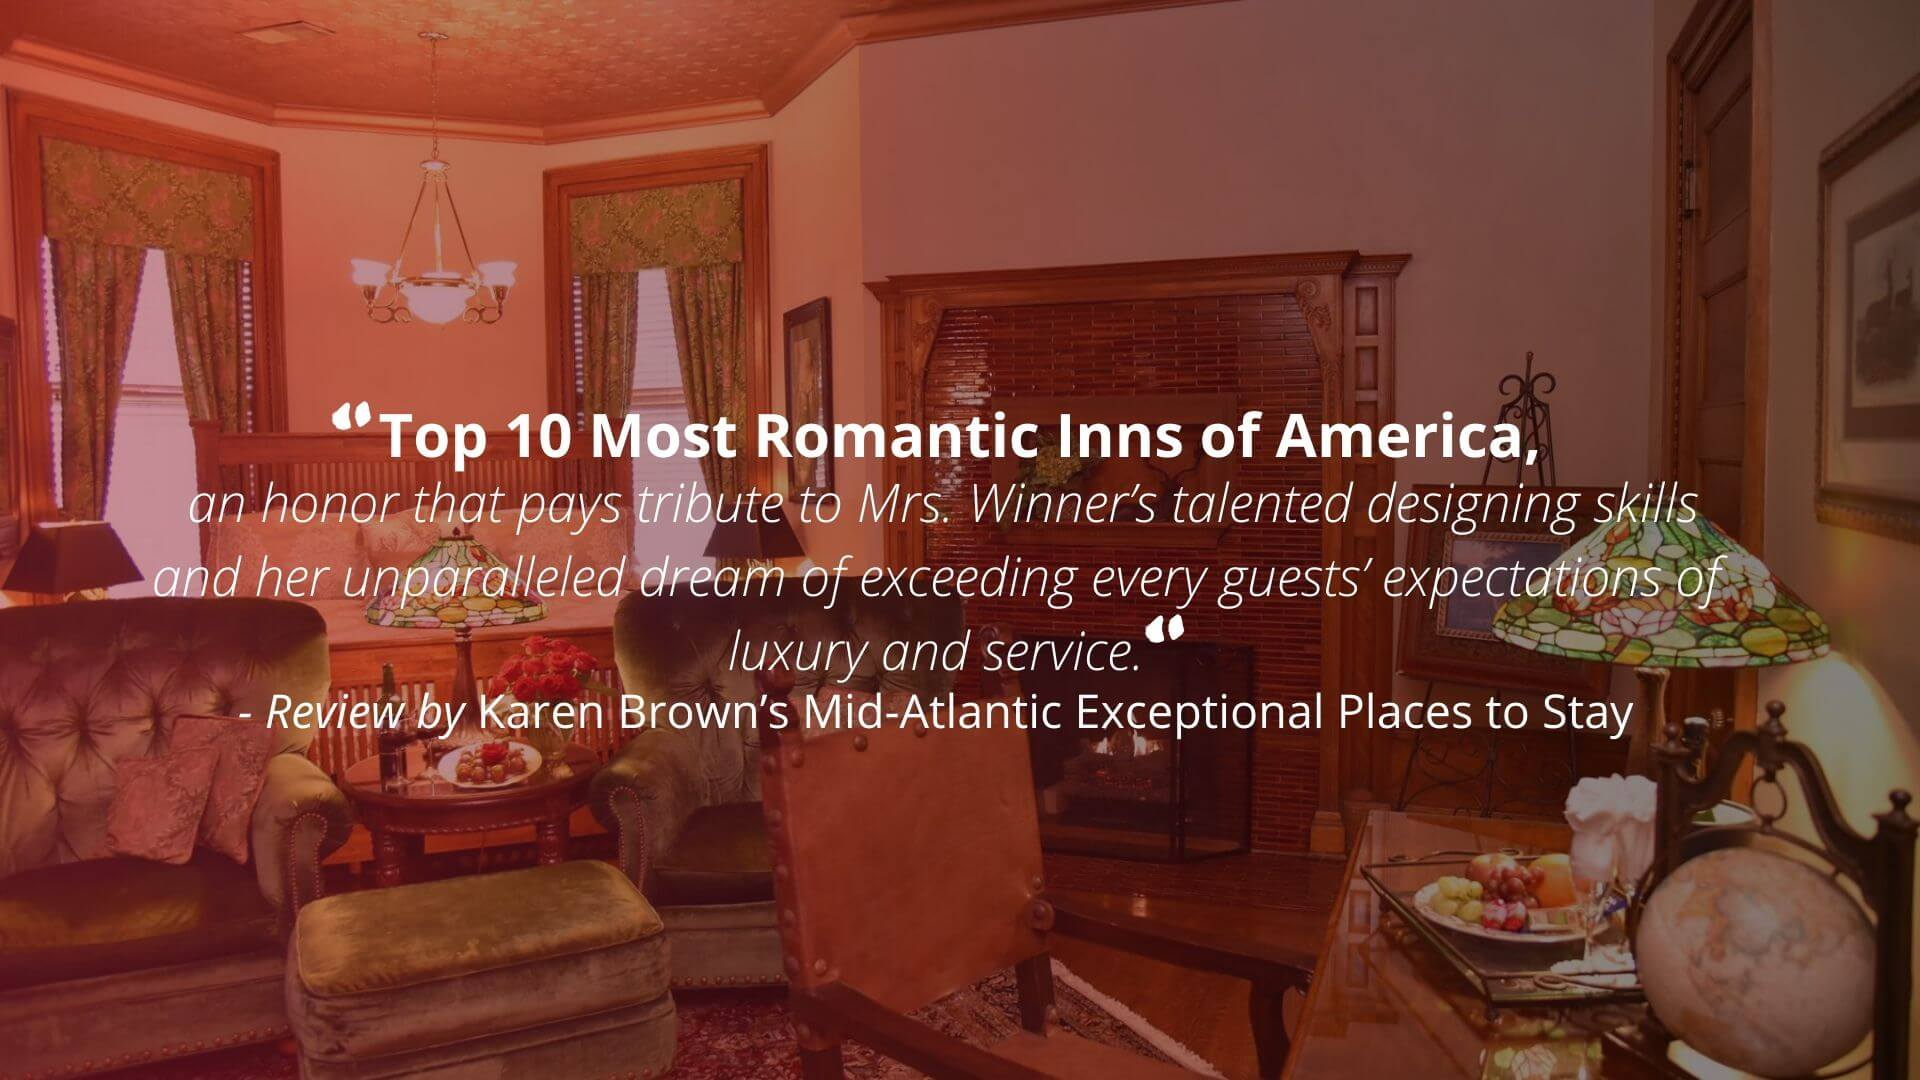 """""""Top 10 Most Romantic Inns of America, an honor that pays tribute to Mrs. Winner's talented designing skills and her unparalleled dream of exceeding every guests' expectations of luxury and service."""" - Review by Karen Brown's Mid-Atlantic Exceptional Places to Stay"""